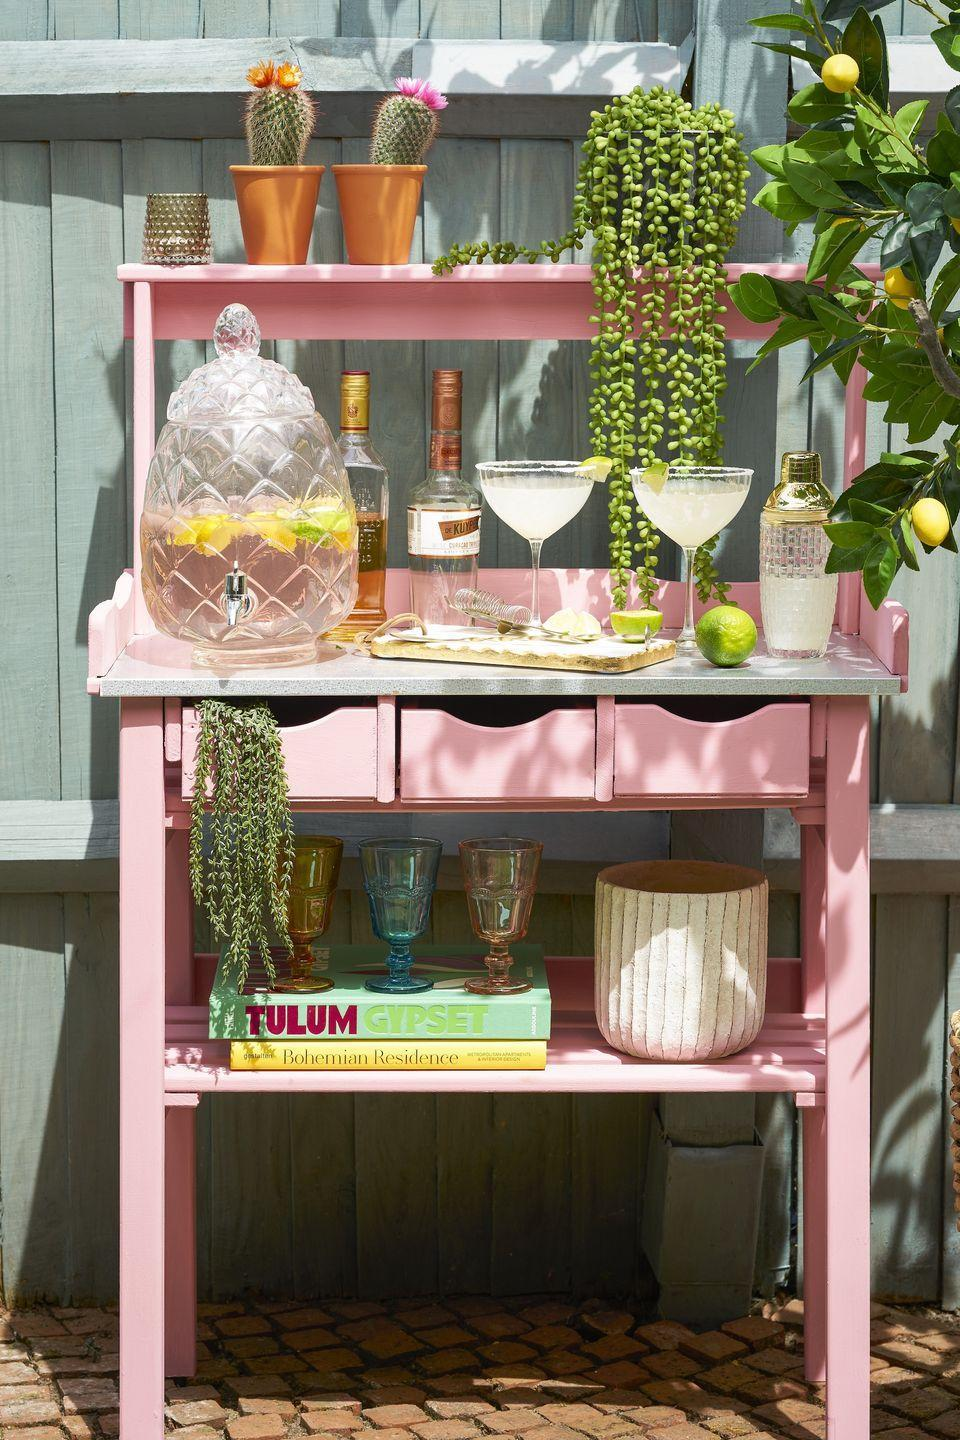 """<p>Want space for entertaining in your garden? Transform your space with a DIY cocktail bar.</p><p>'There's no need to invest in a pricey readymade bar when you can update a cheap and cheerful potting bench by day into a chic drinks station by night with a simple, purse-friendly lick of paint,' says <a href=""""https://go.redirectingat.com?id=127X1599956&url=https%3A%2F%2Fwww.wayfair.co.uk%2F&sref=https%3A%2F%2Fwww.redonline.co.uk%2Finteriors%2Feditors_choice%2Fg35933369%2Fgarden-ideas-on-a-budget%2F"""" rel=""""nofollow noopener"""" target=""""_blank"""" data-ylk=""""slk:Wayfair"""" class=""""link rapid-noclick-resp"""">Wayfair</a>'s Resident Style Advisor, Nadia McCowan Hill.</p><p>'A good quality primer & undercoat will remove the need for laborious sanding, so all you need to think about is selecting your go-to hue. Miami pink will add a retro flavour to your bar, whereas cornflower blue is the perfect tone for an English garden spritz and pistachio tones will blend seamlessly with spring foliage. Don't forget to seal your bar with a waterproof finishing wax to keep the sundowner sessions flowing summer after summer.'</p><p>And, of course, don't forget to style it: Add a drinks dispenser, coloured glassware and your favourite beverages – and finish off with succulents and greenery.</p>"""